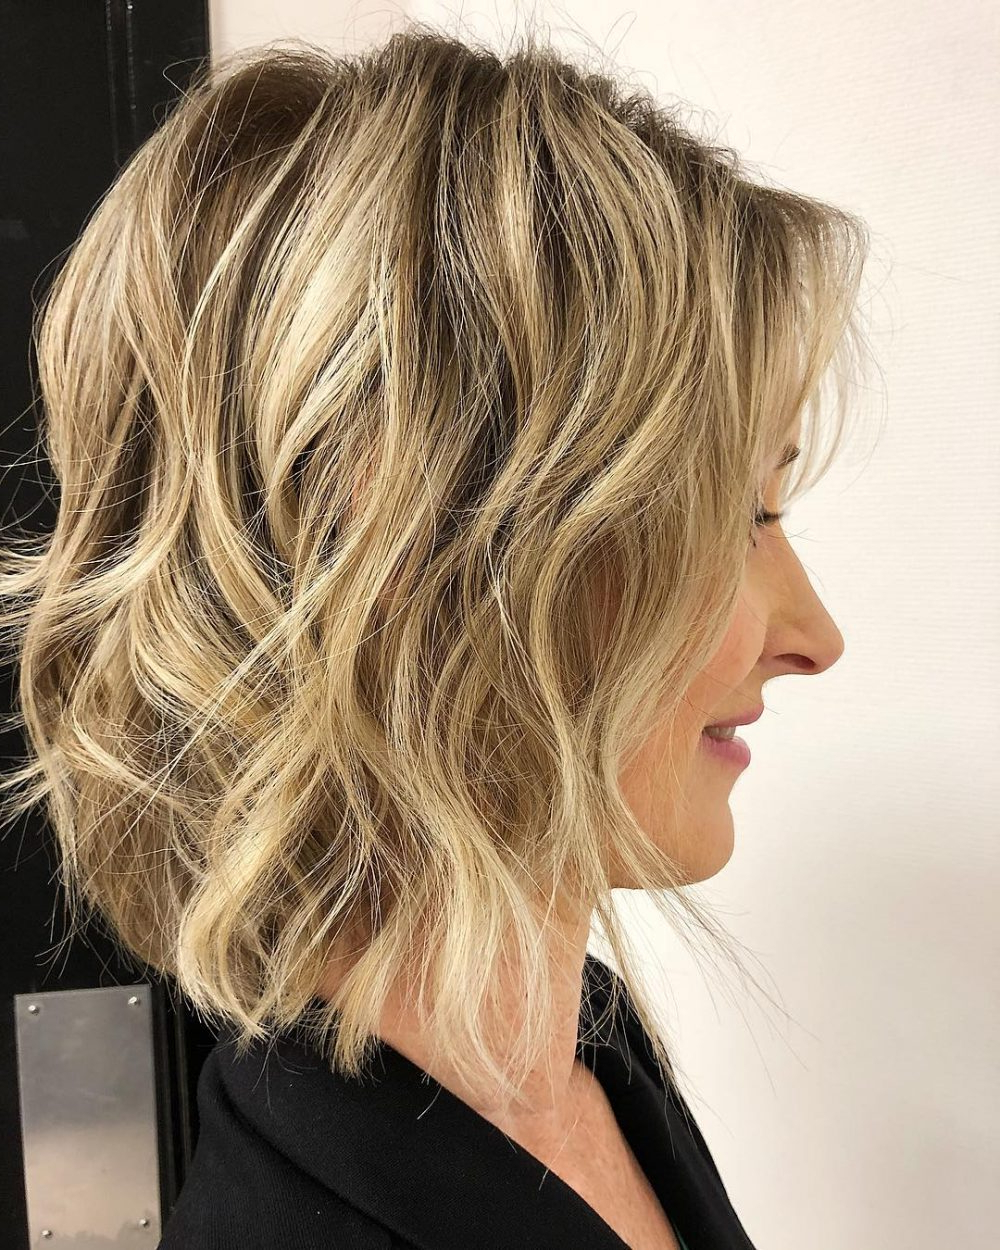 43 Perfect Short Hairstyles For Fine Hair In 2018 With Regard To Cute Short Hairstyles For Fine Hair (View 3 of 25)